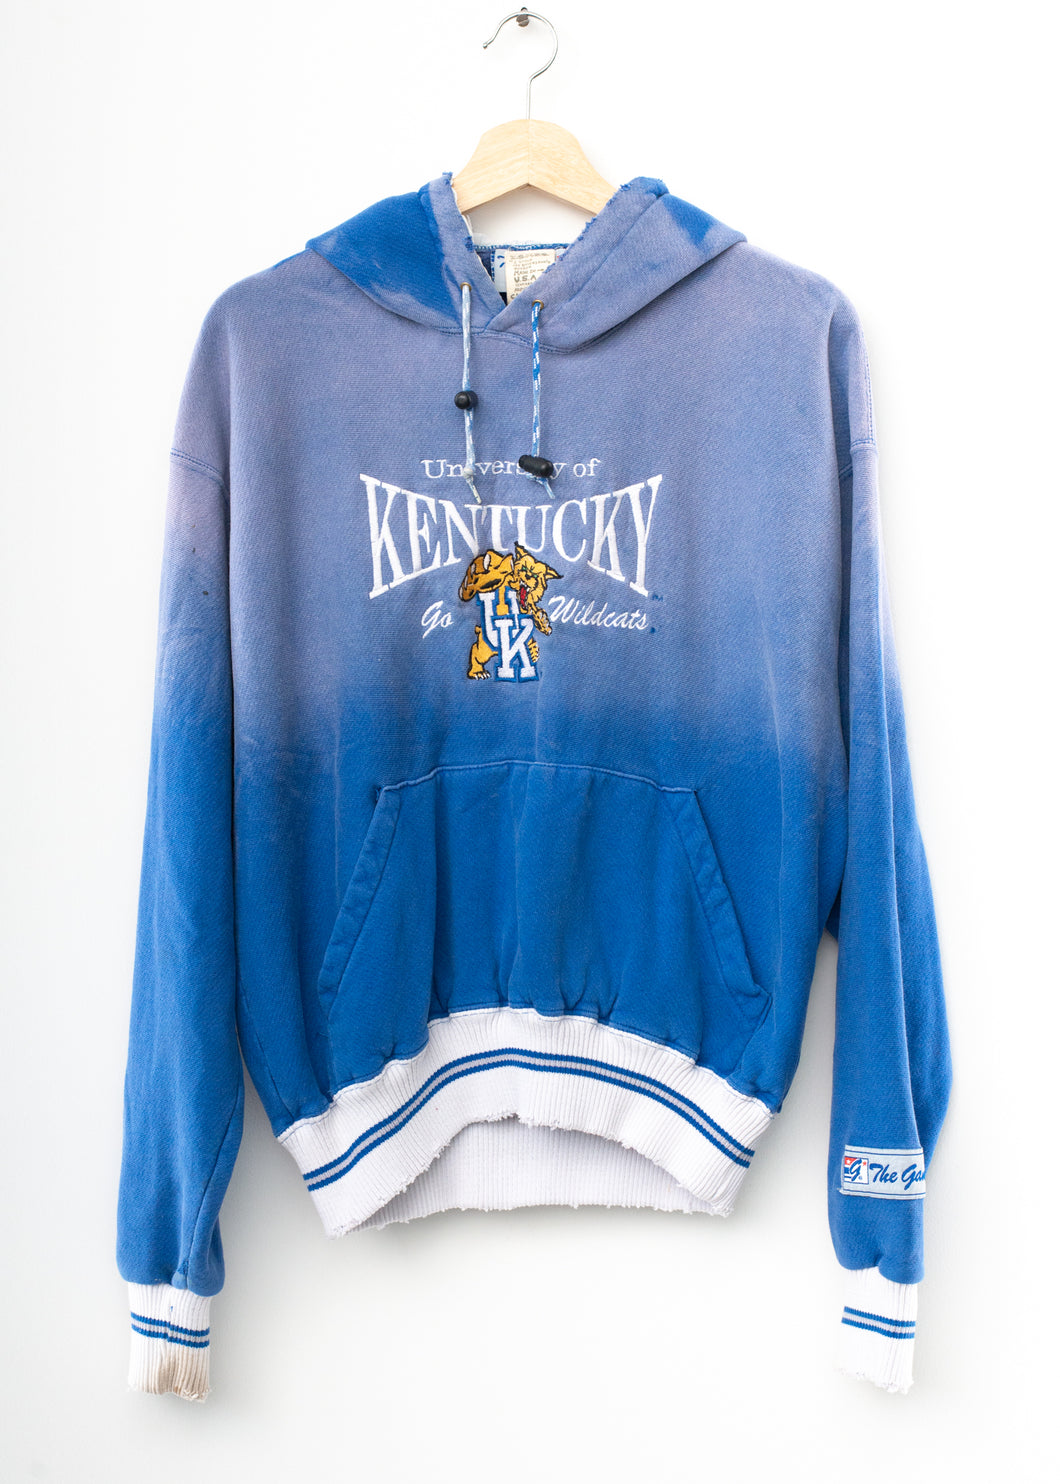 University of Kentucky Wildcats Hoodie